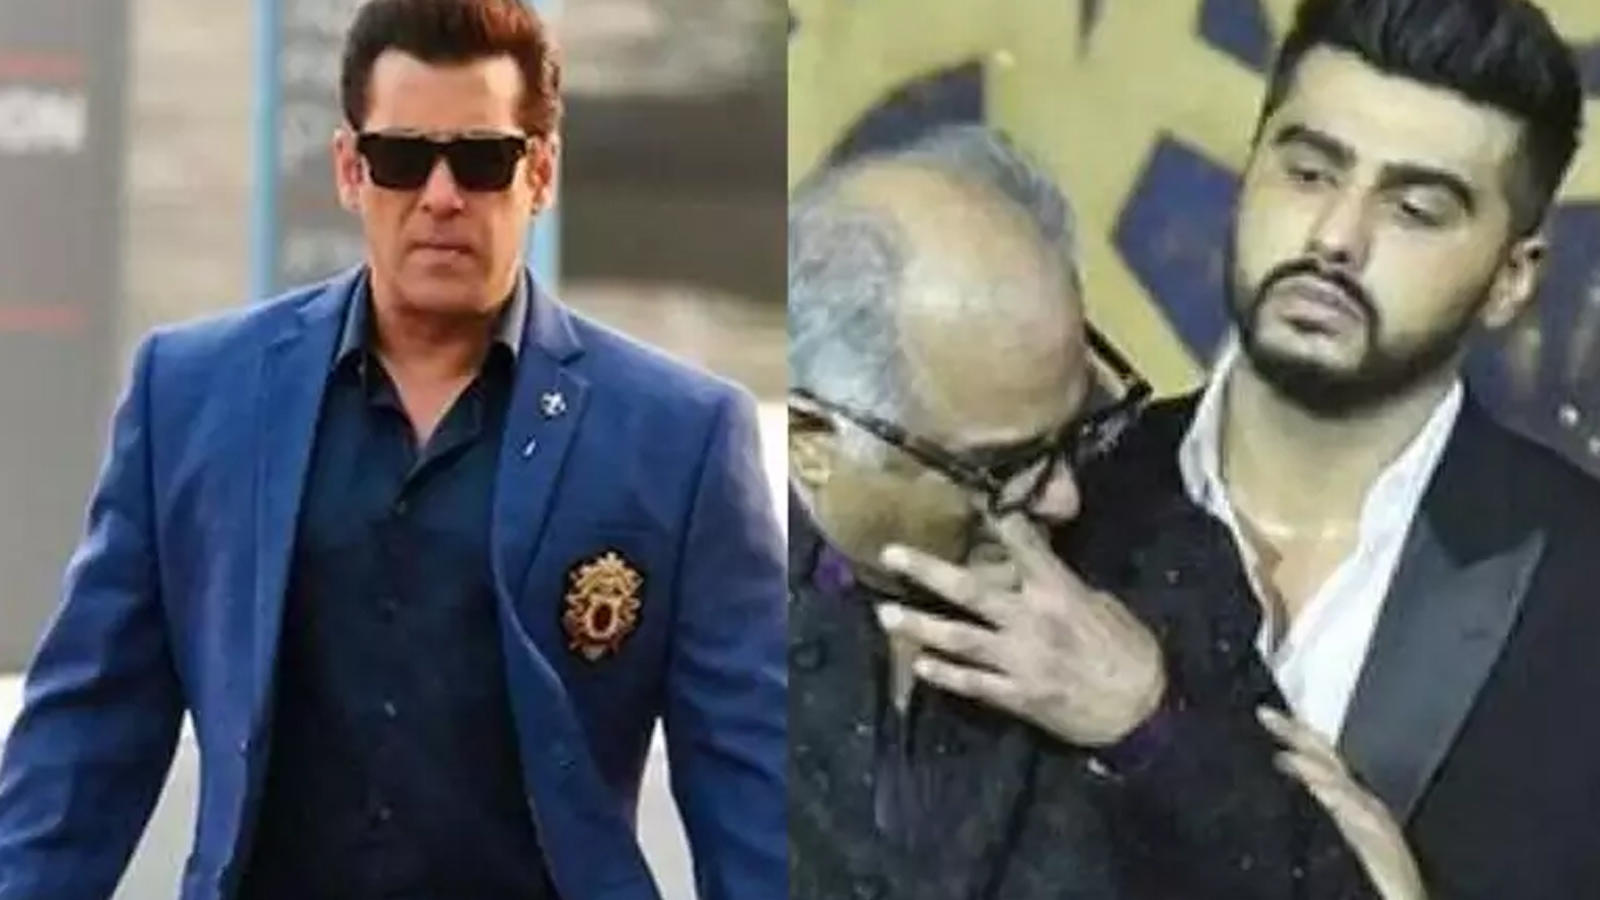 boney-kapoor-reveals-that-his-relationship-with-salman-khan-is-strained-now